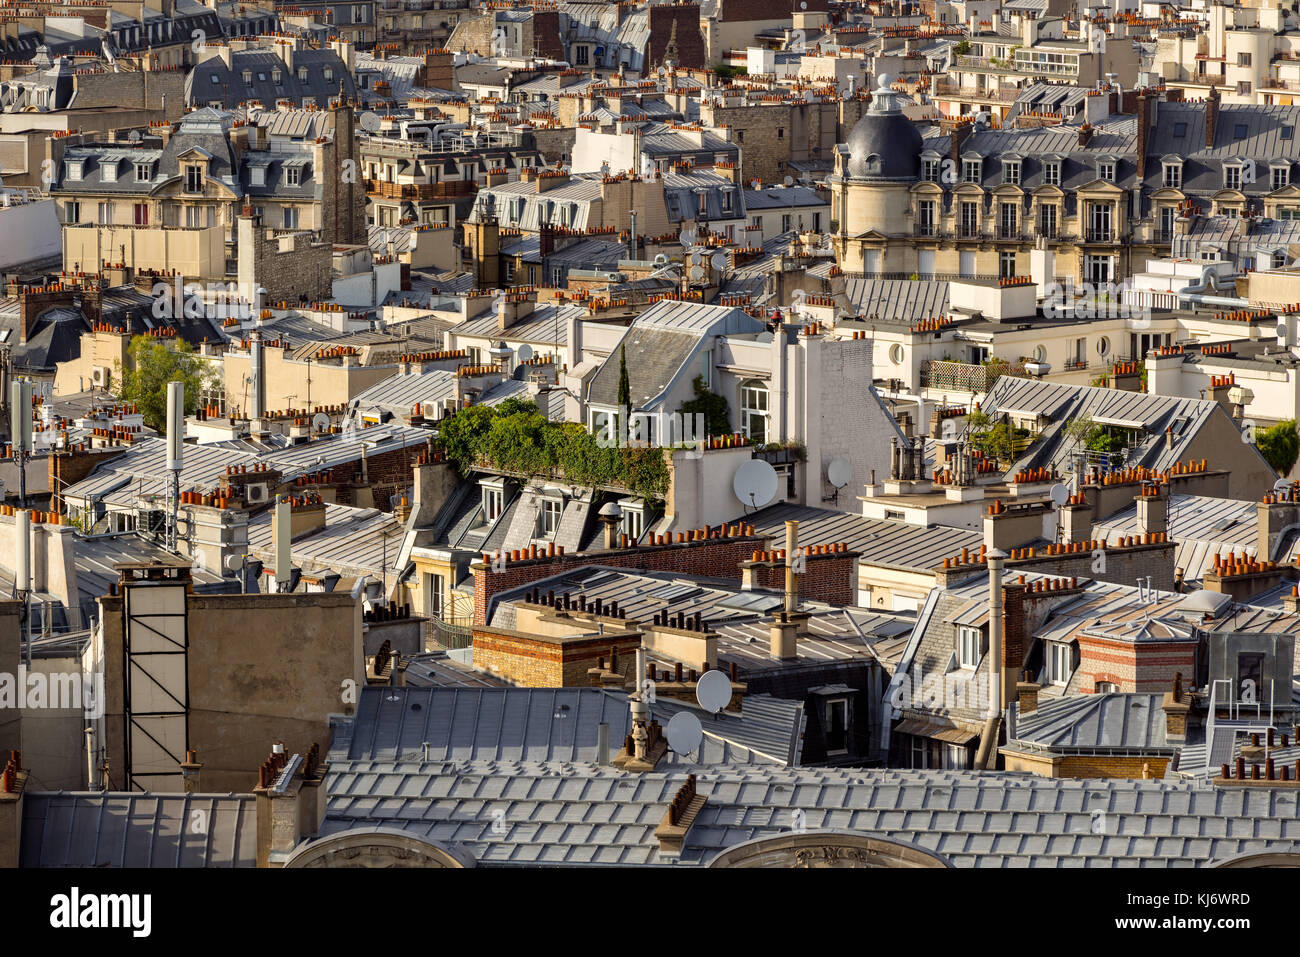 Paris rooftops in summer with their roof gardens, mansard and French roofs. 17th Arrondissement of Paris, France - Stock Image